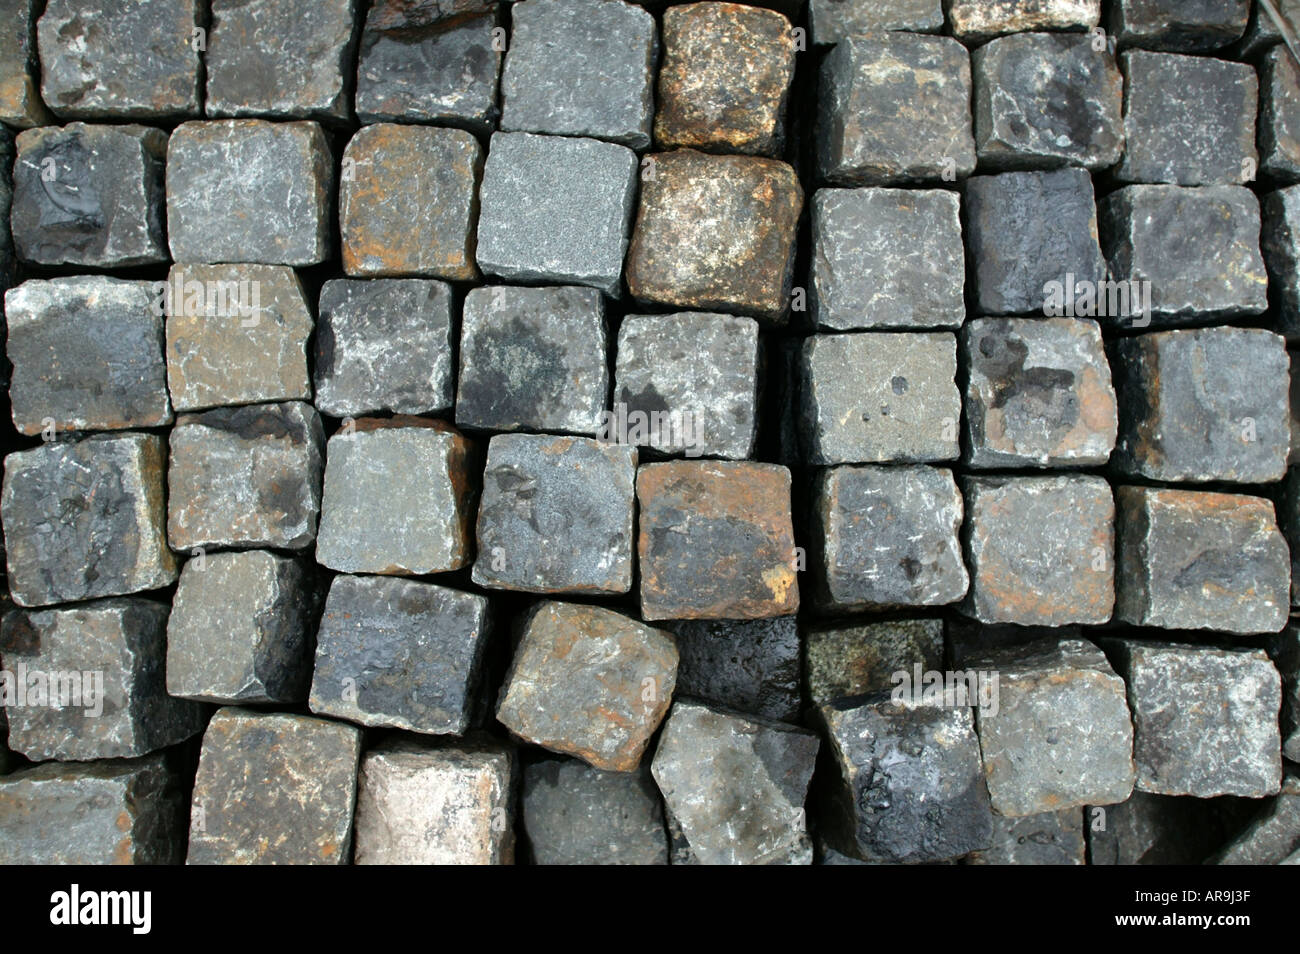 collection of granite road sets at solopark building  supplies yard - Stock Image